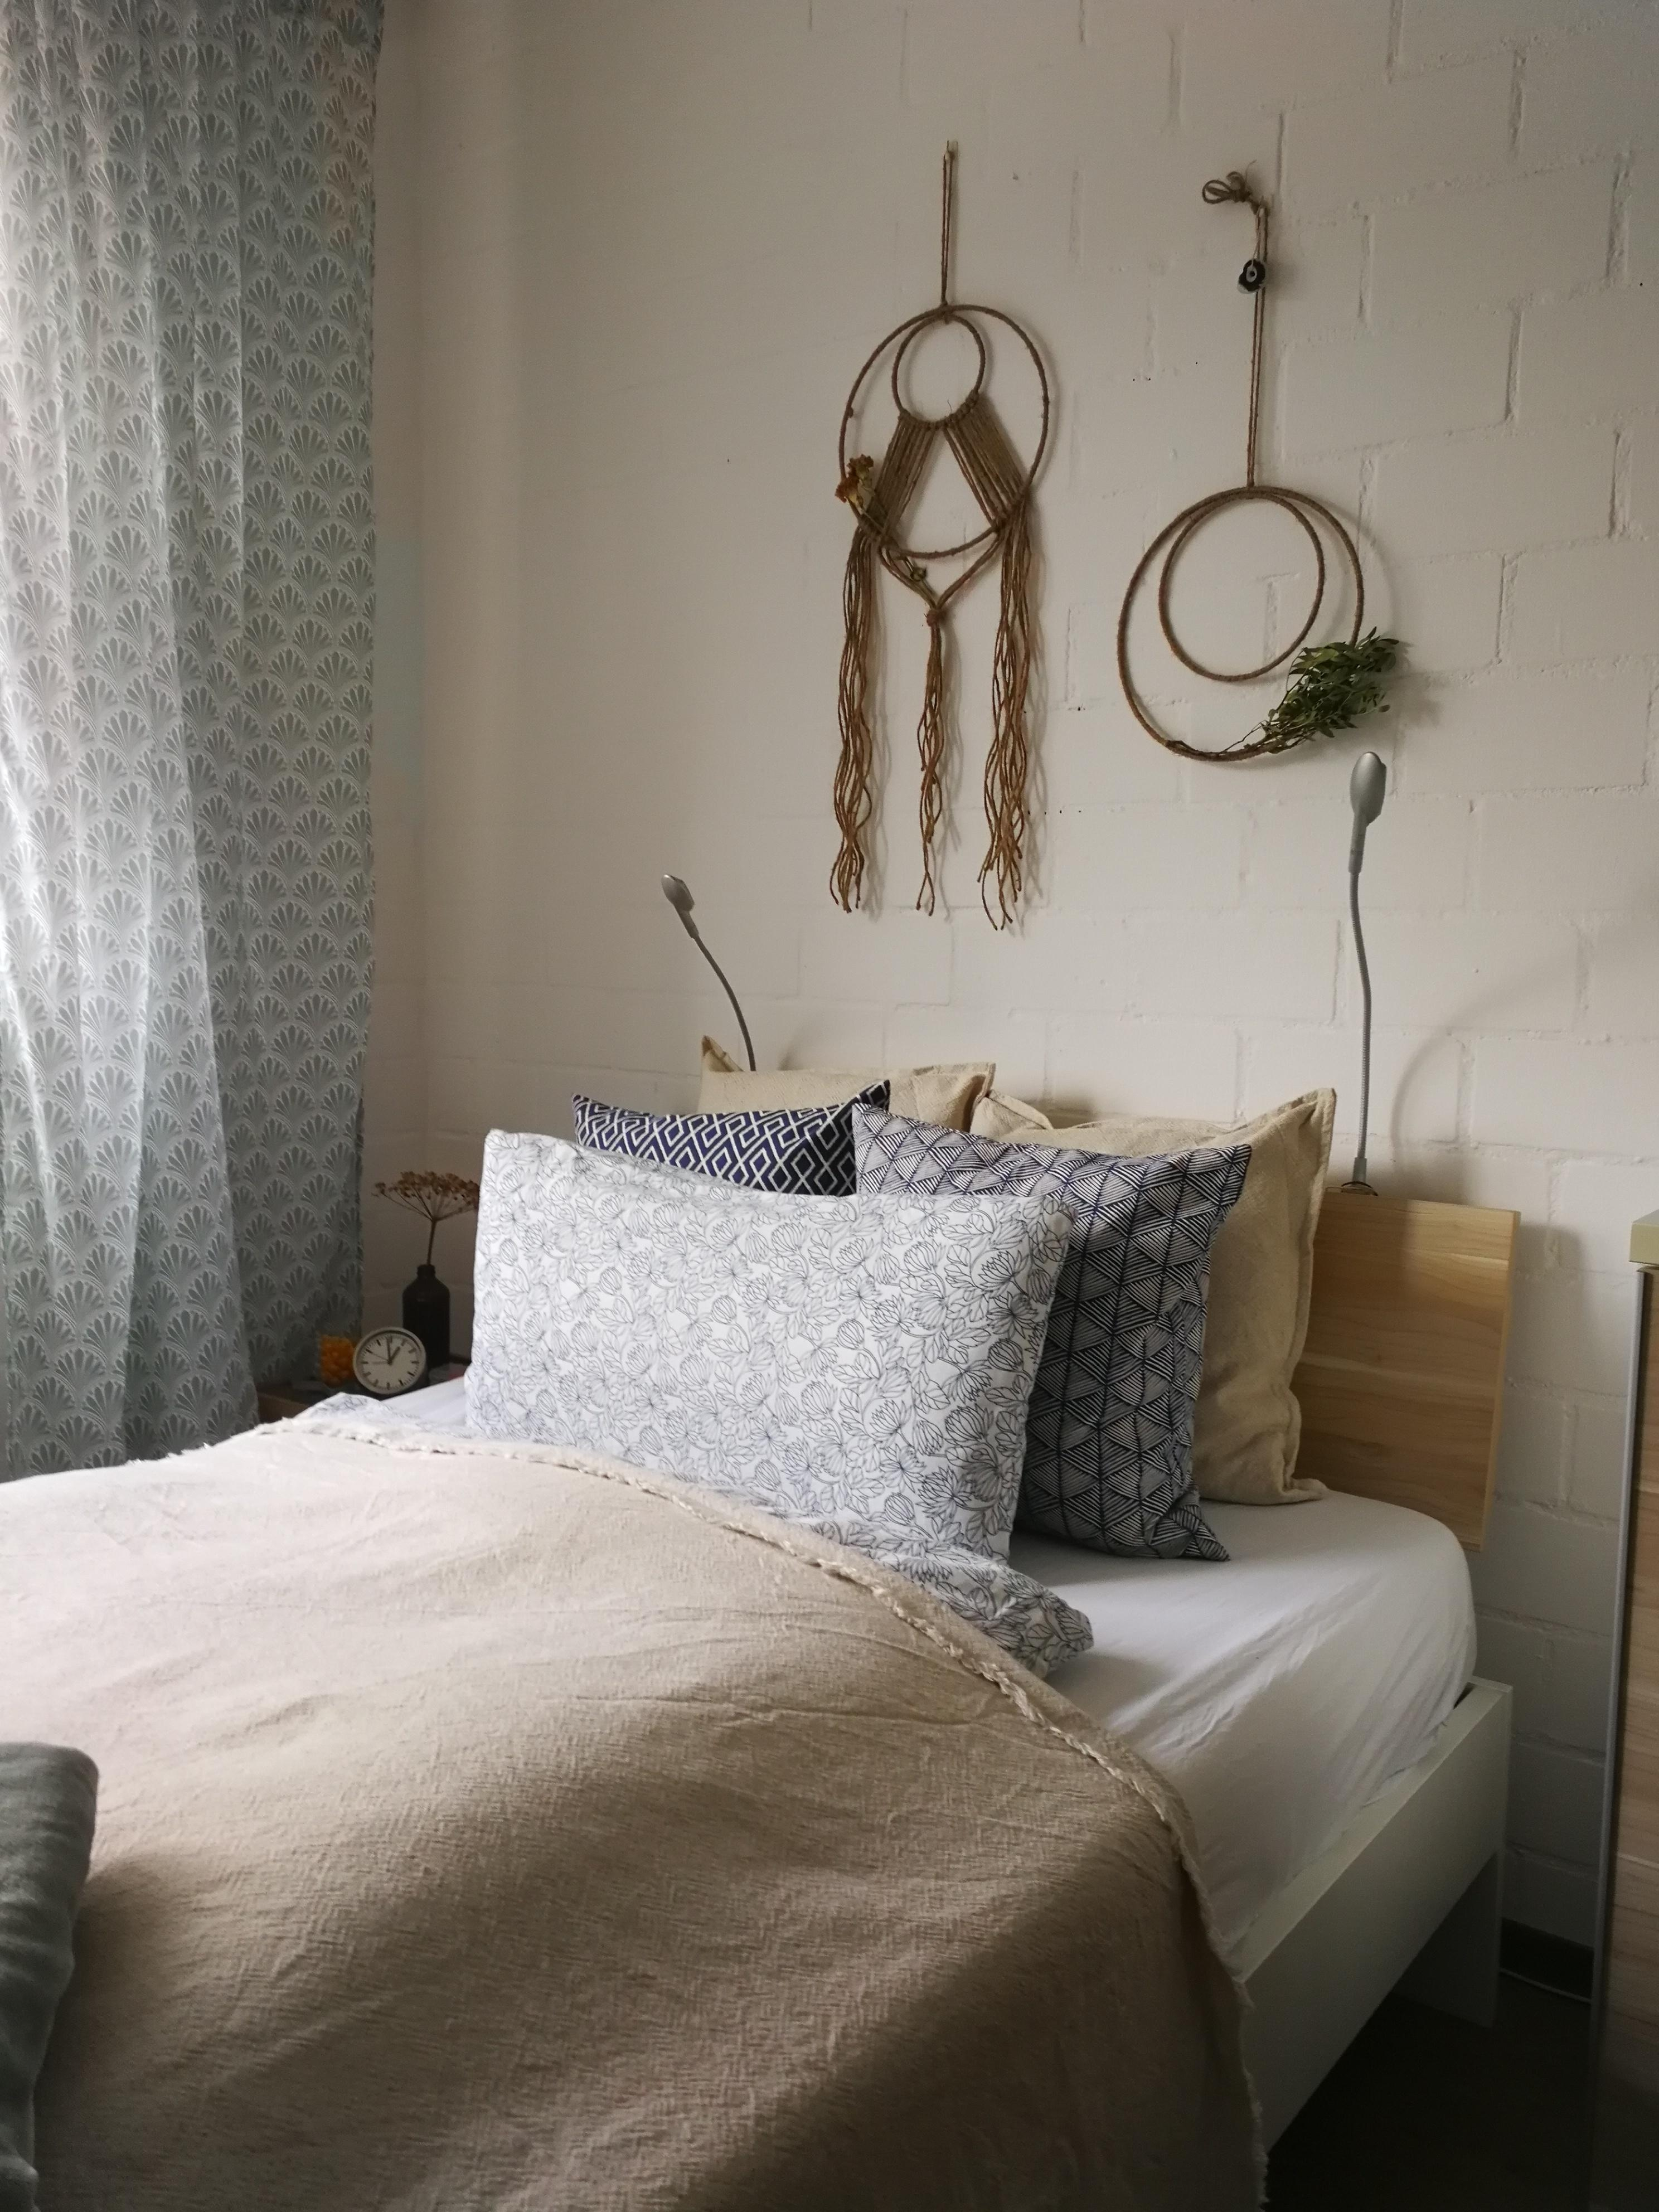 #placetobe #bedroom #schlafzimmer #cosiness #interior #wallhanging